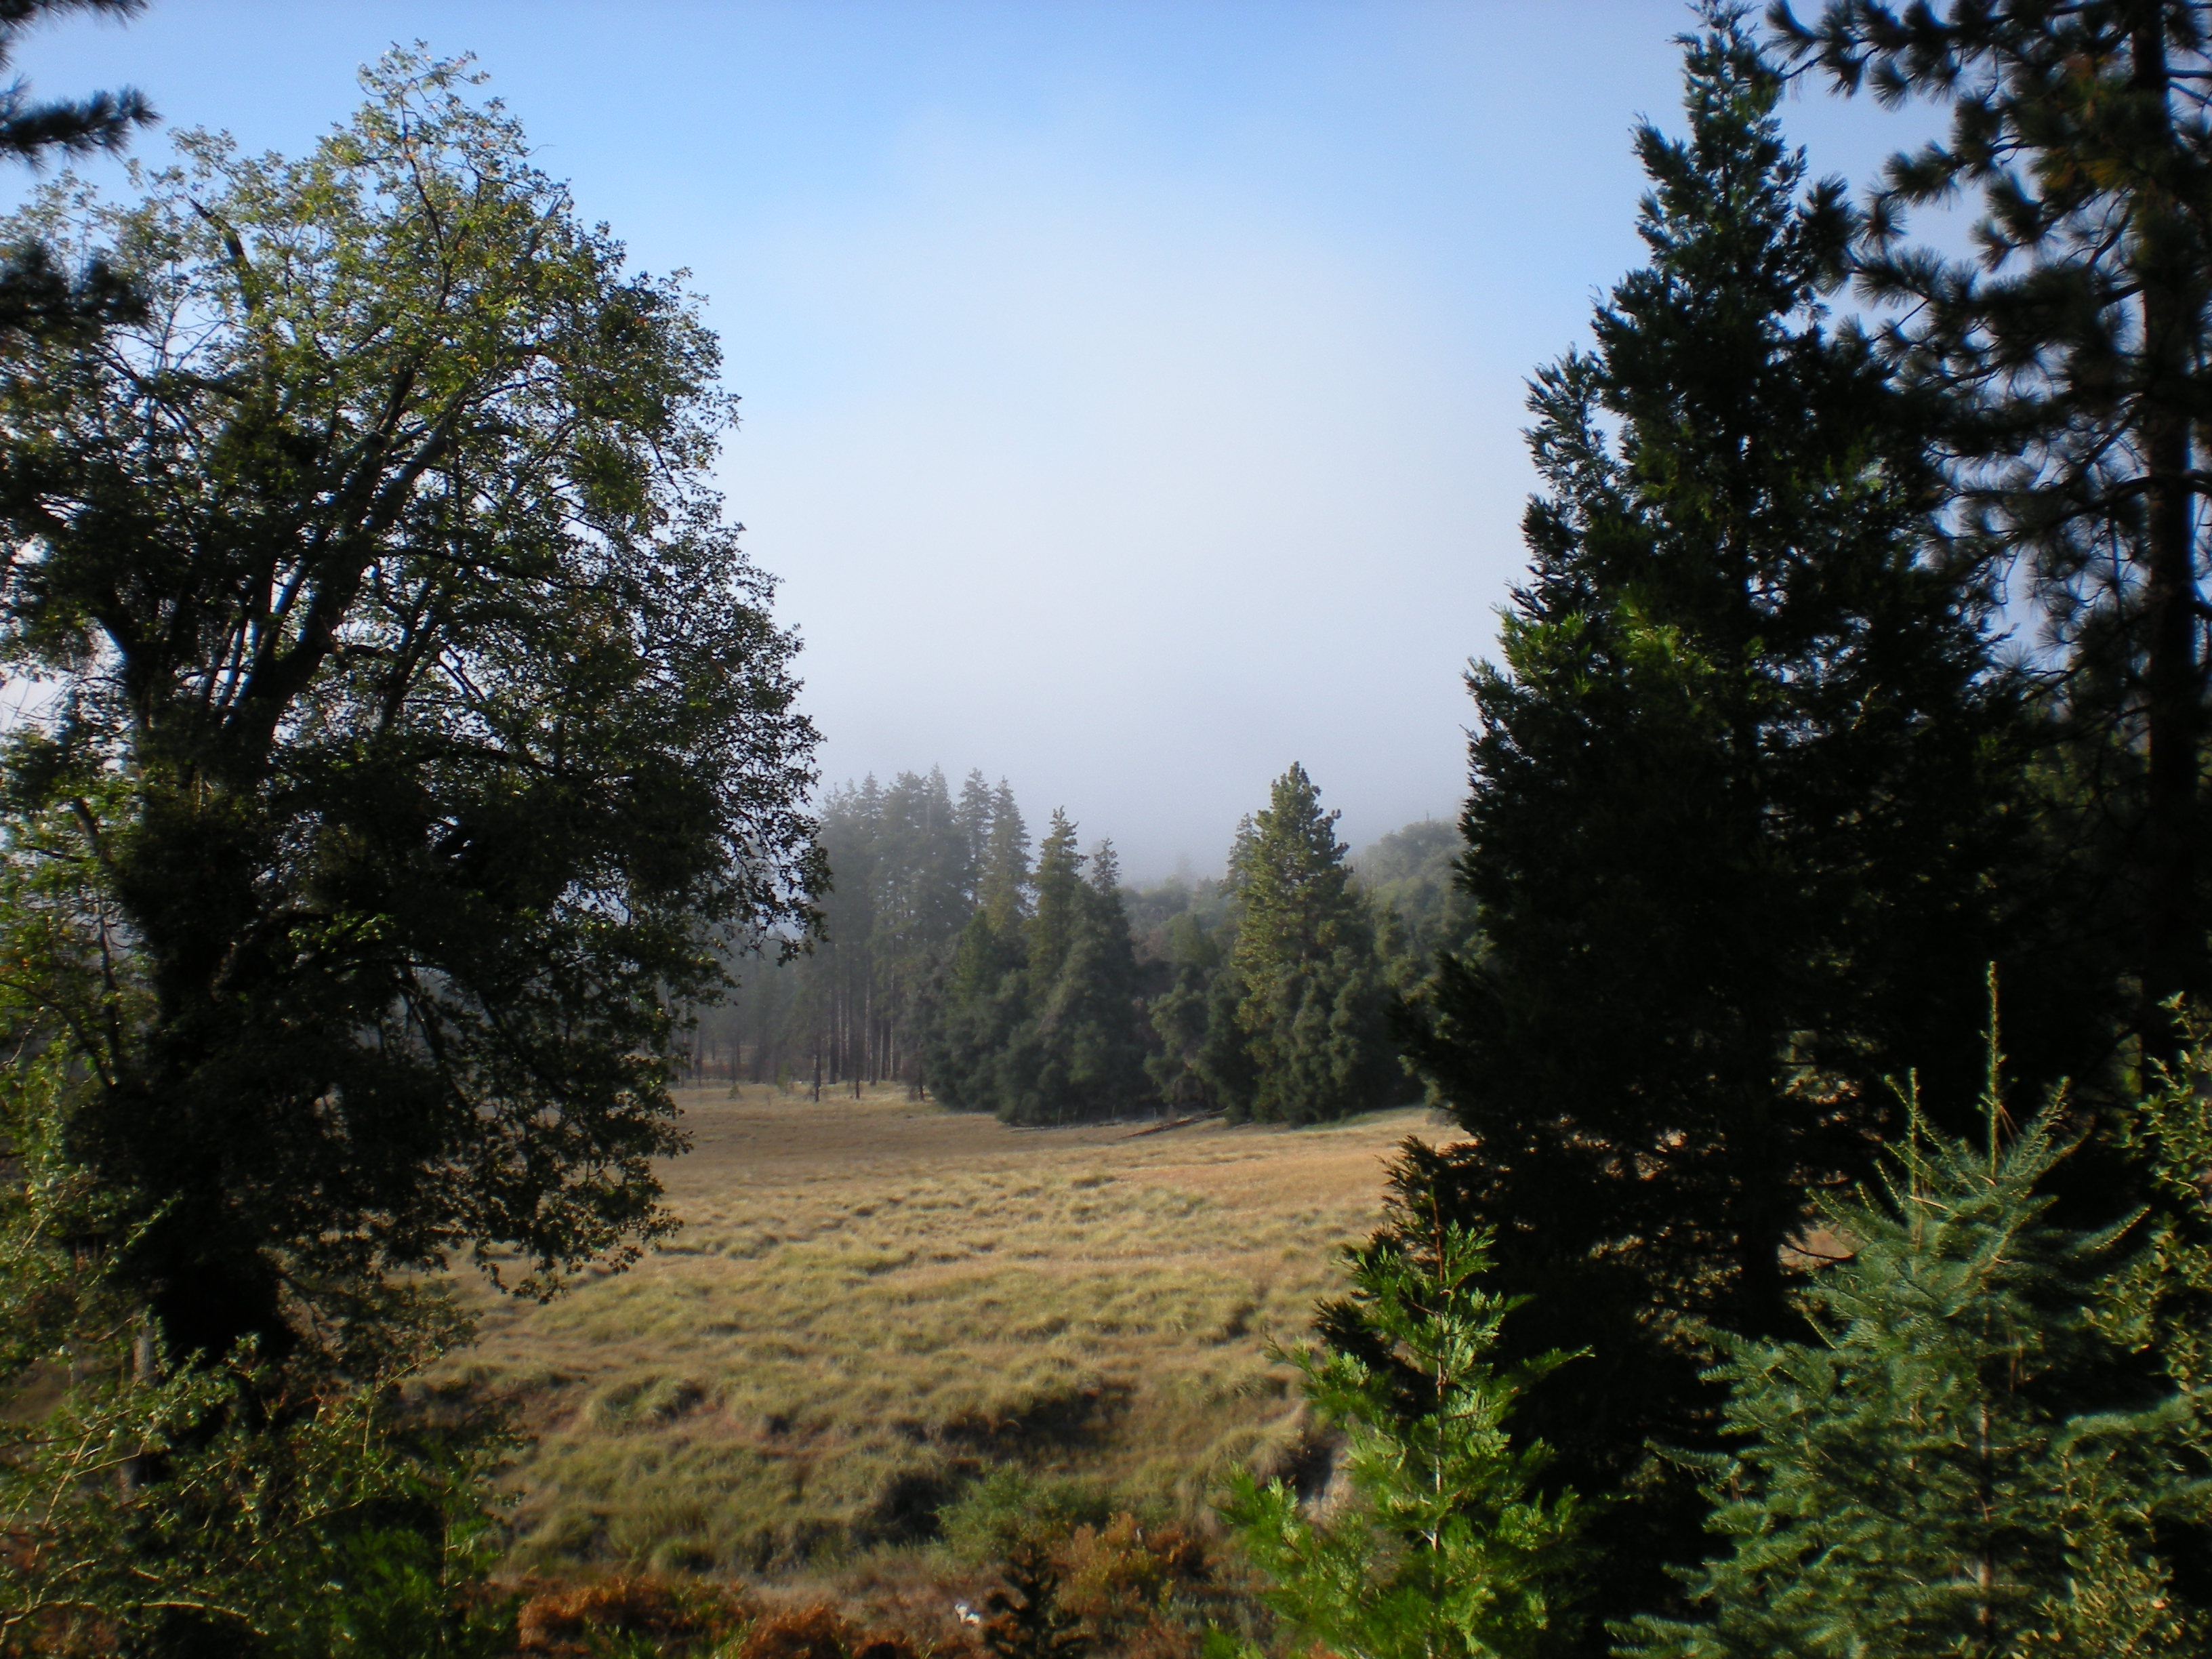 Image from Palomar Mountain SP